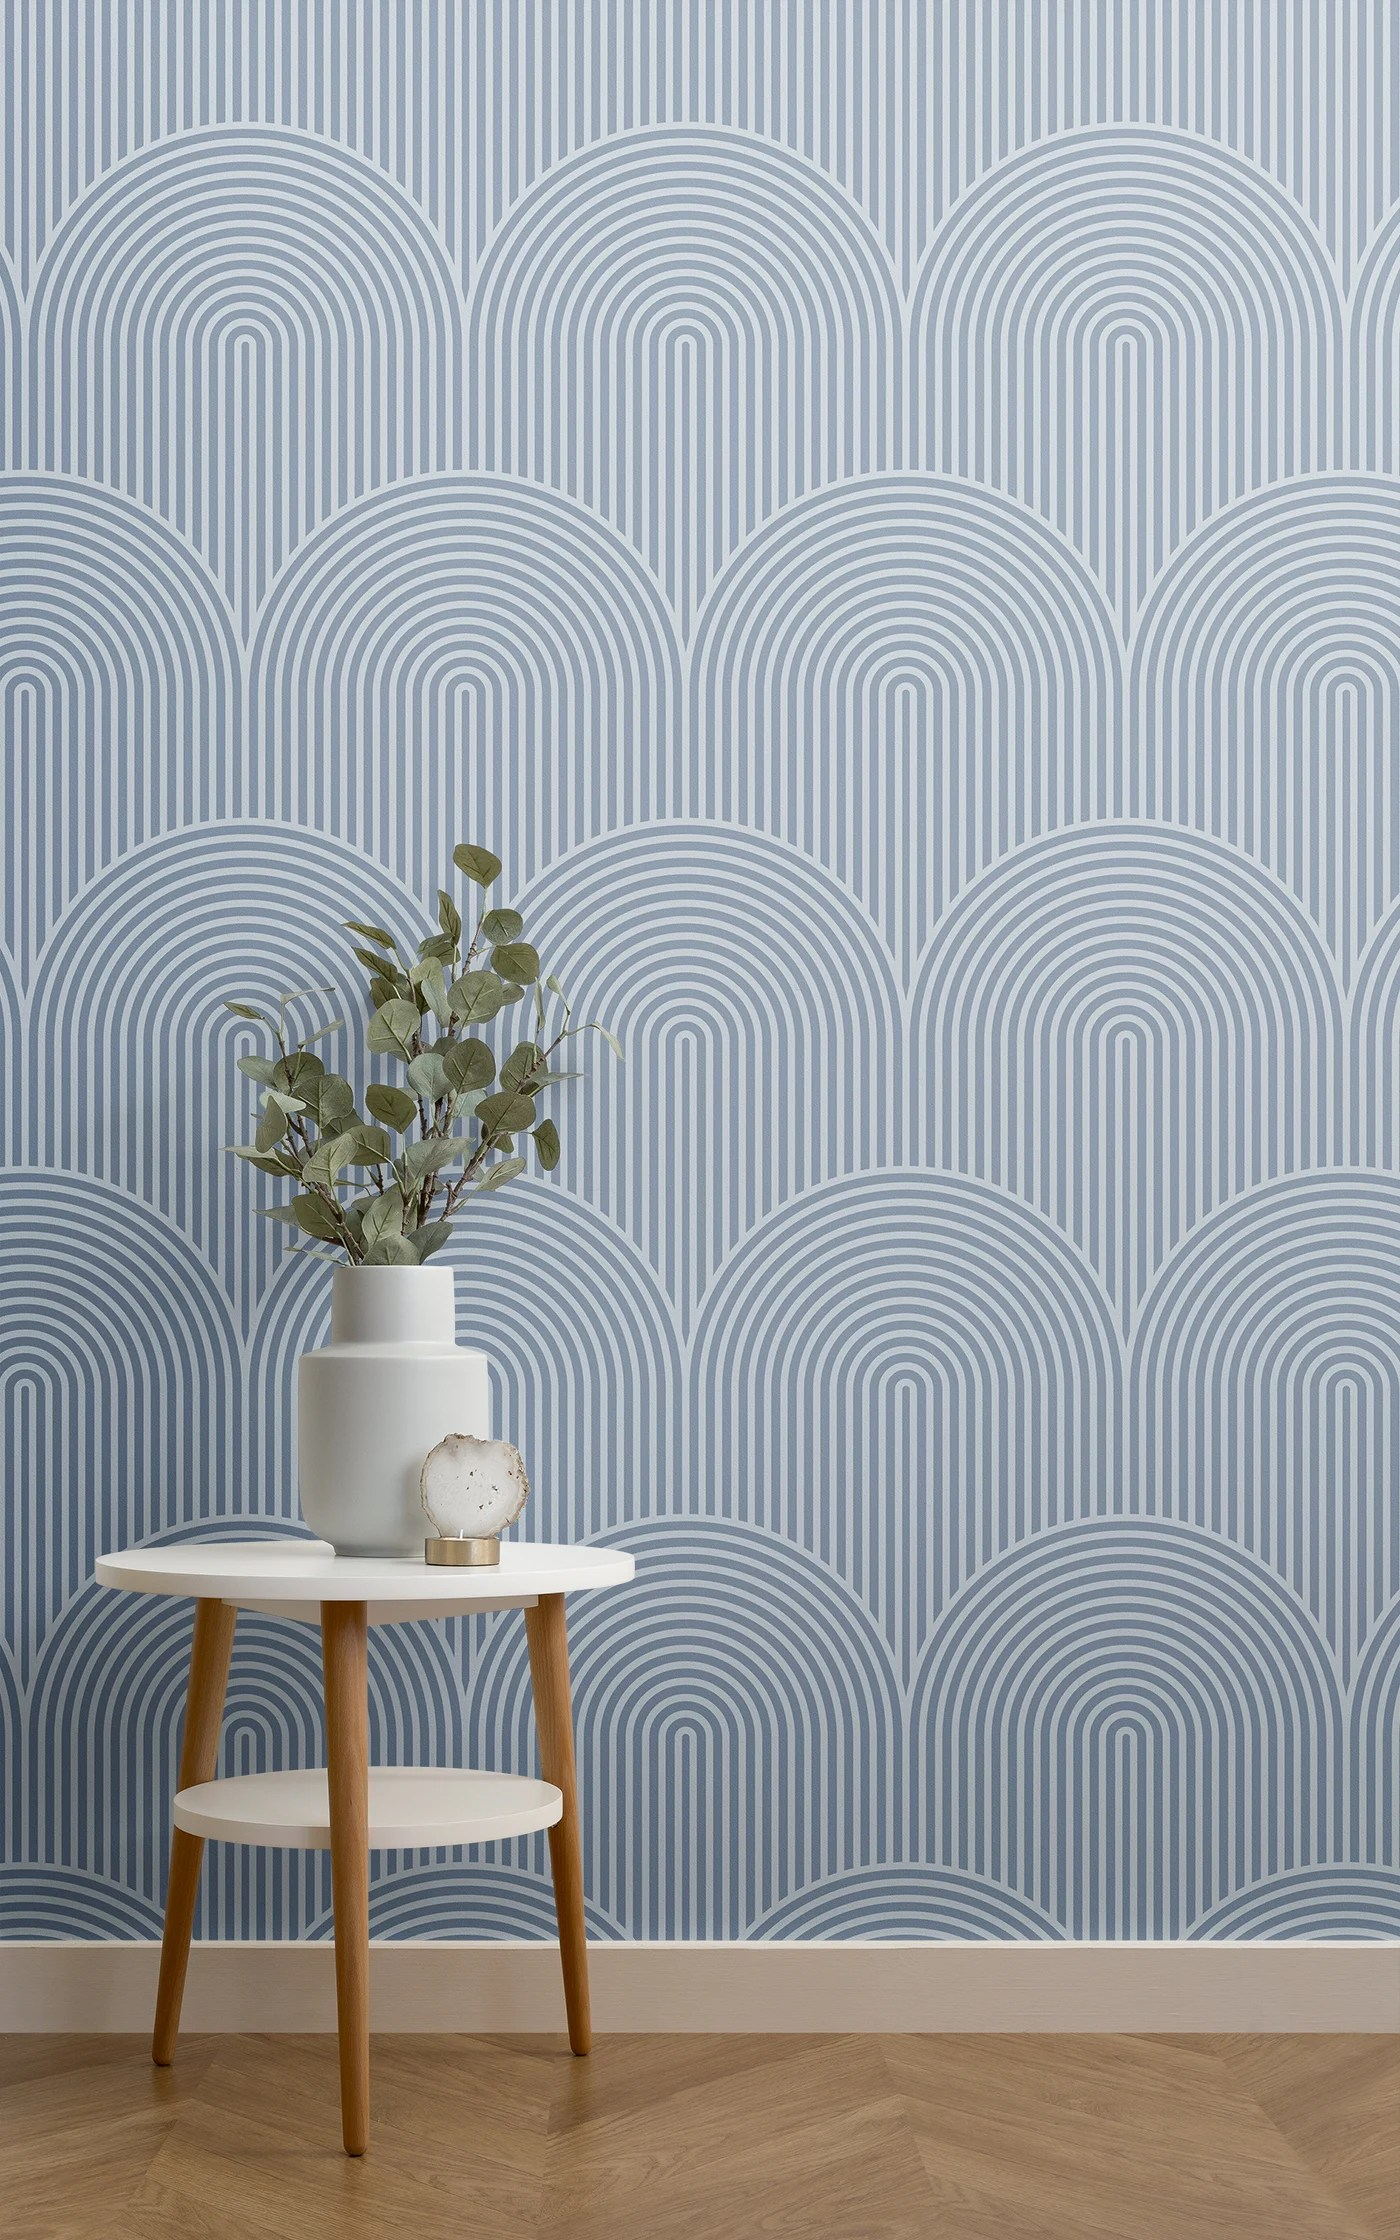 5 Wallpaper Ideas To Maximise Your Hallway Space Murals Wallpaper